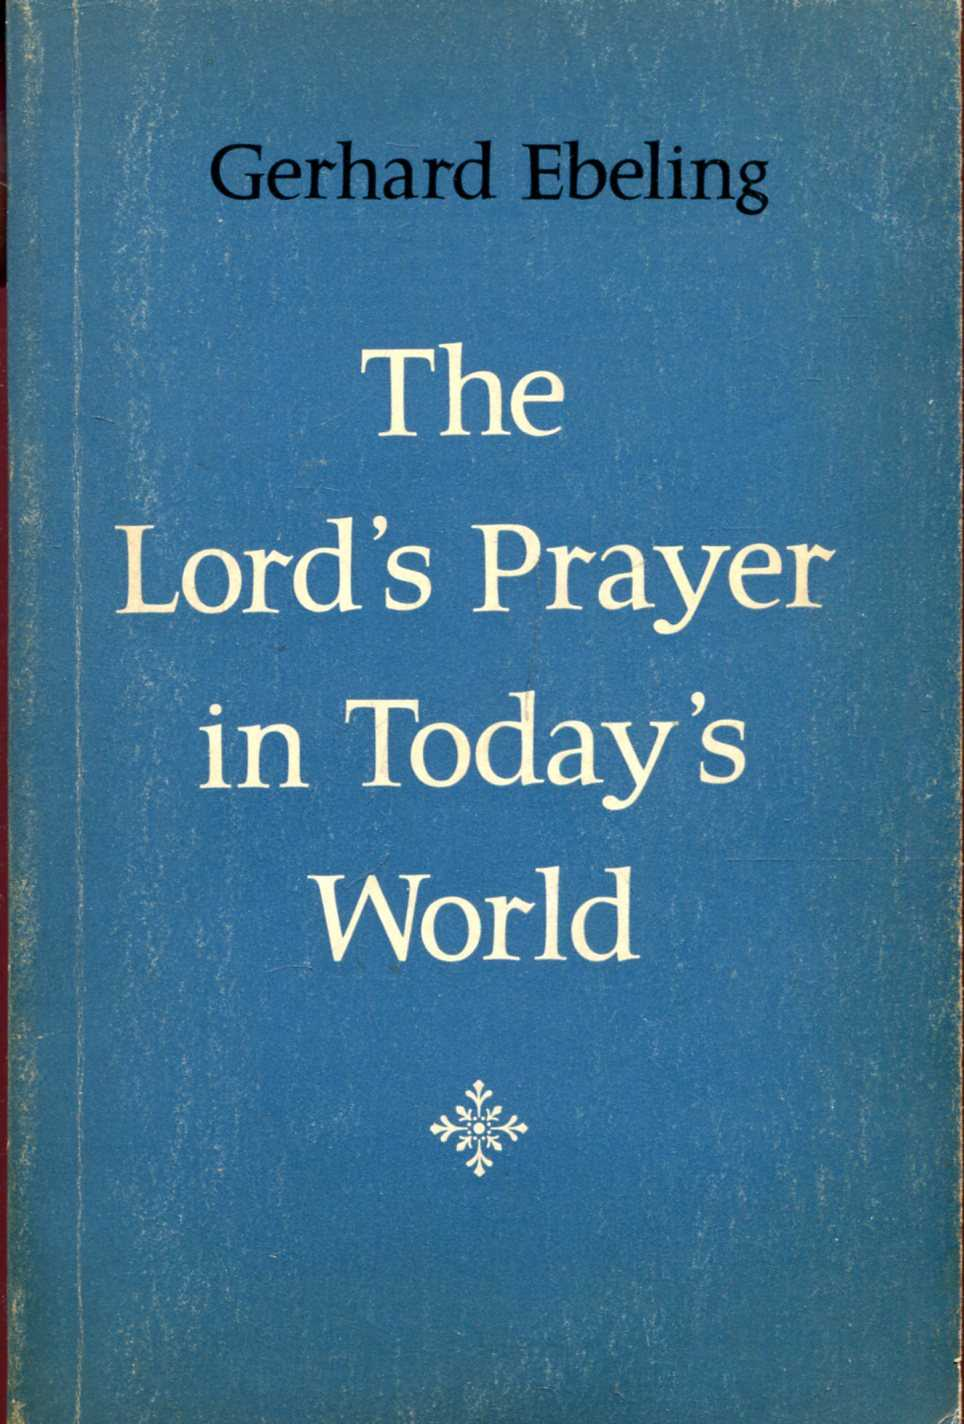 Image for The Lord's Prayer in Today's World